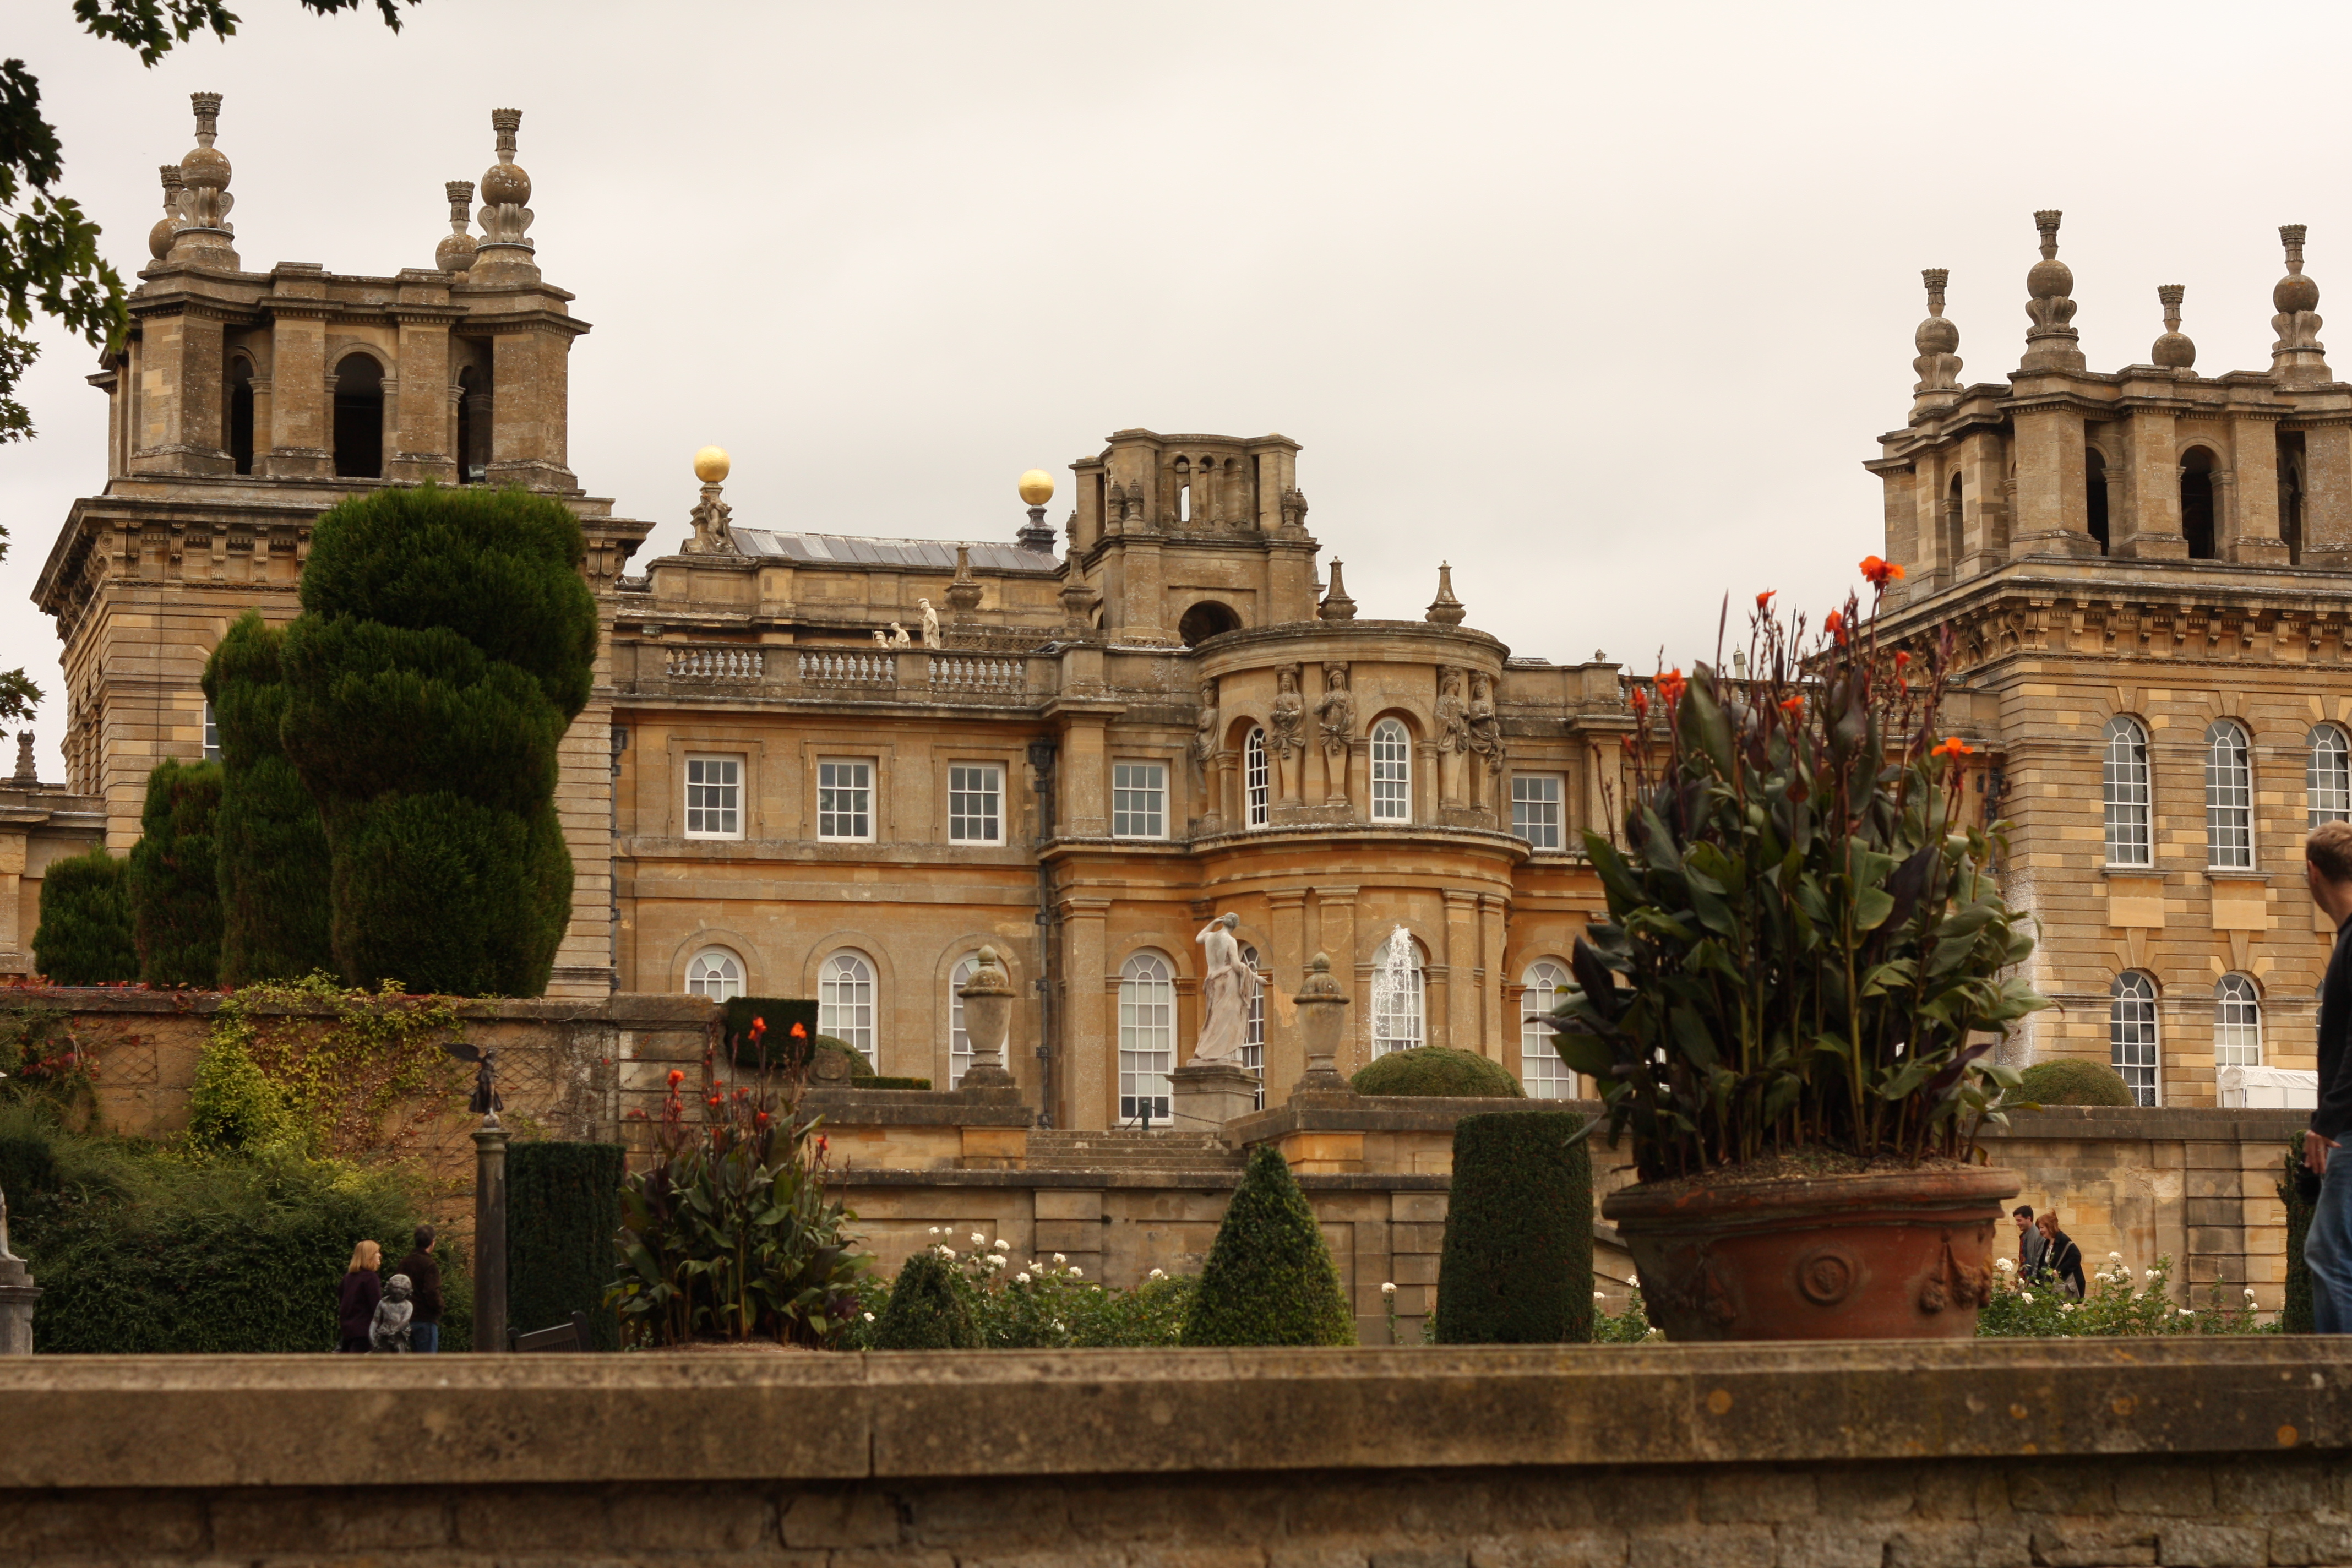 And Blenheim Palace Was